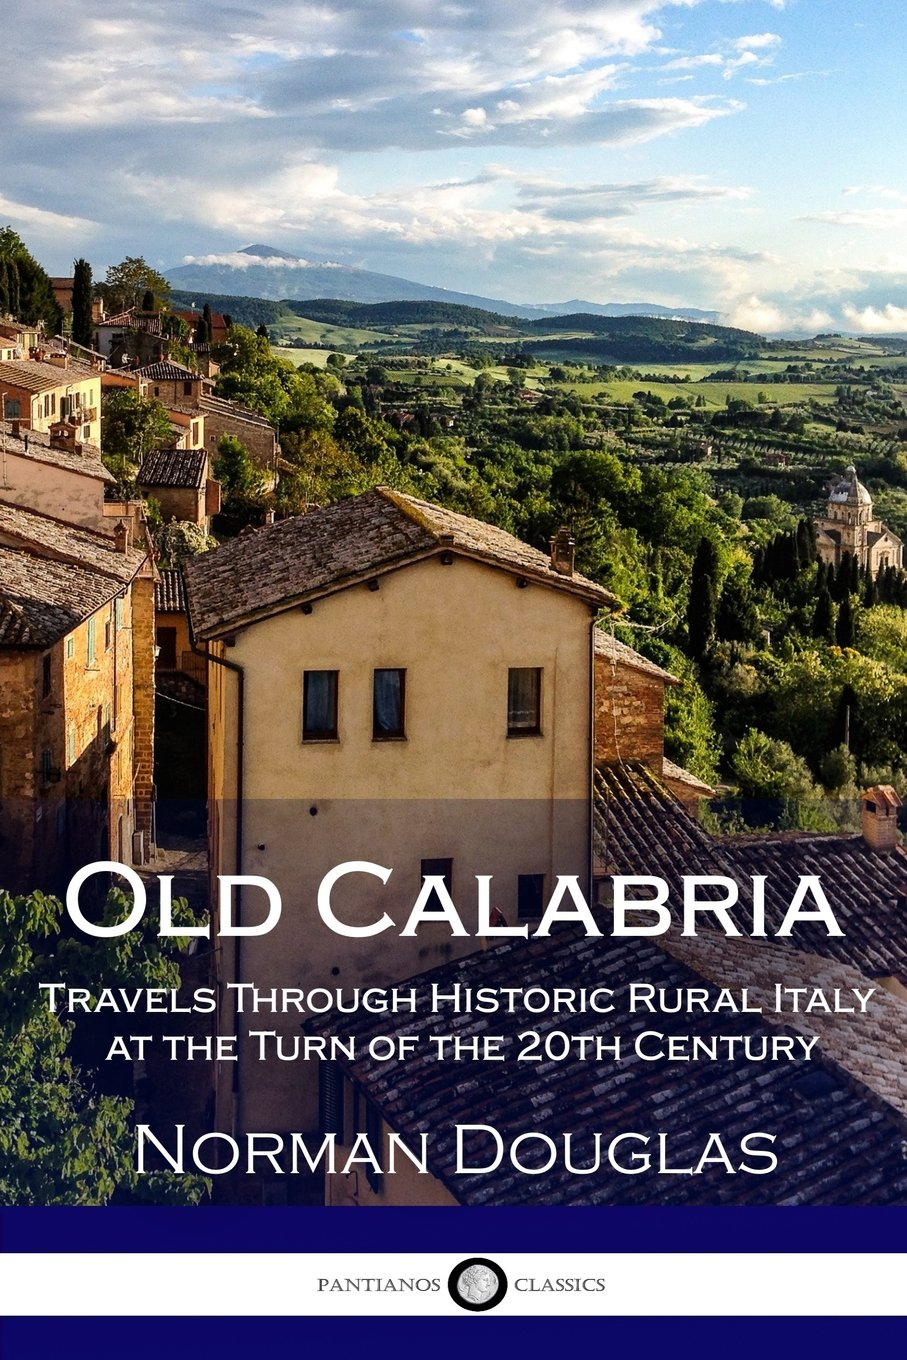 Old Calabria: Travels Through Historic Rural Italy at the Turn of the 20th Century ebook